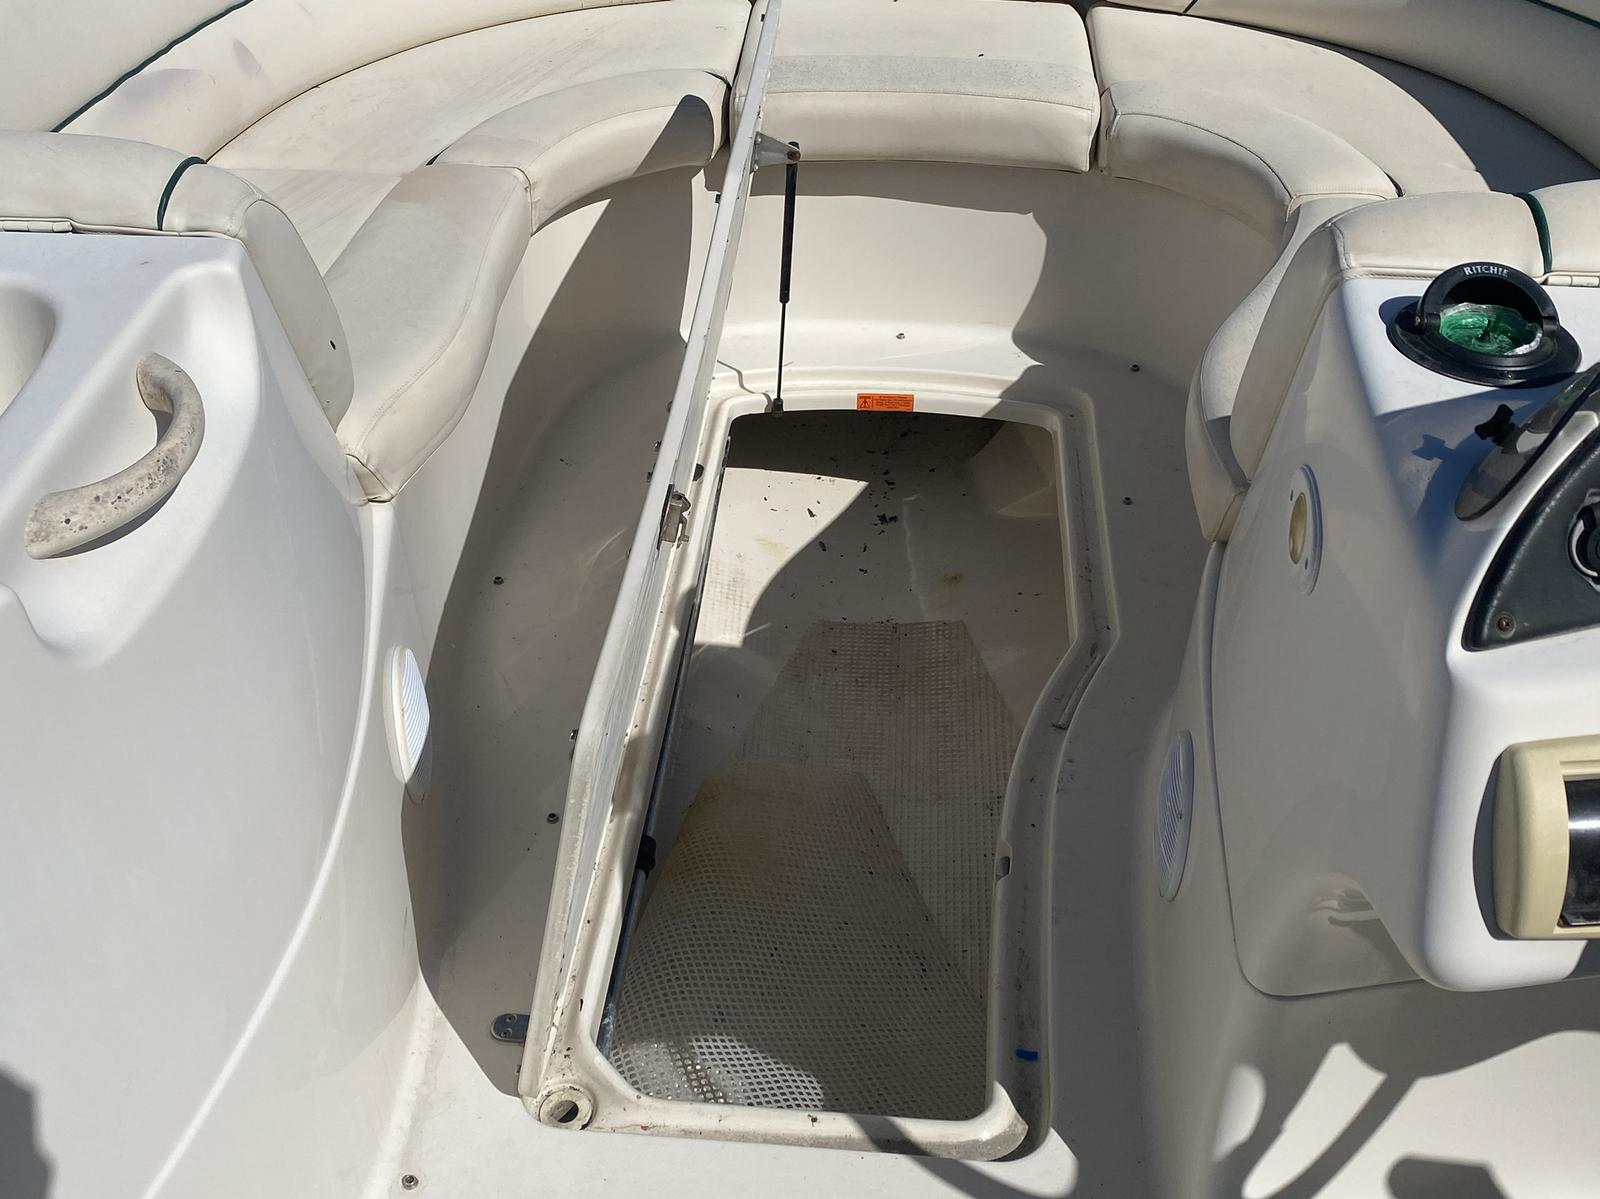 2005 Azure boat for sale, model of the boat is AZ210 & Image # 2 of 13